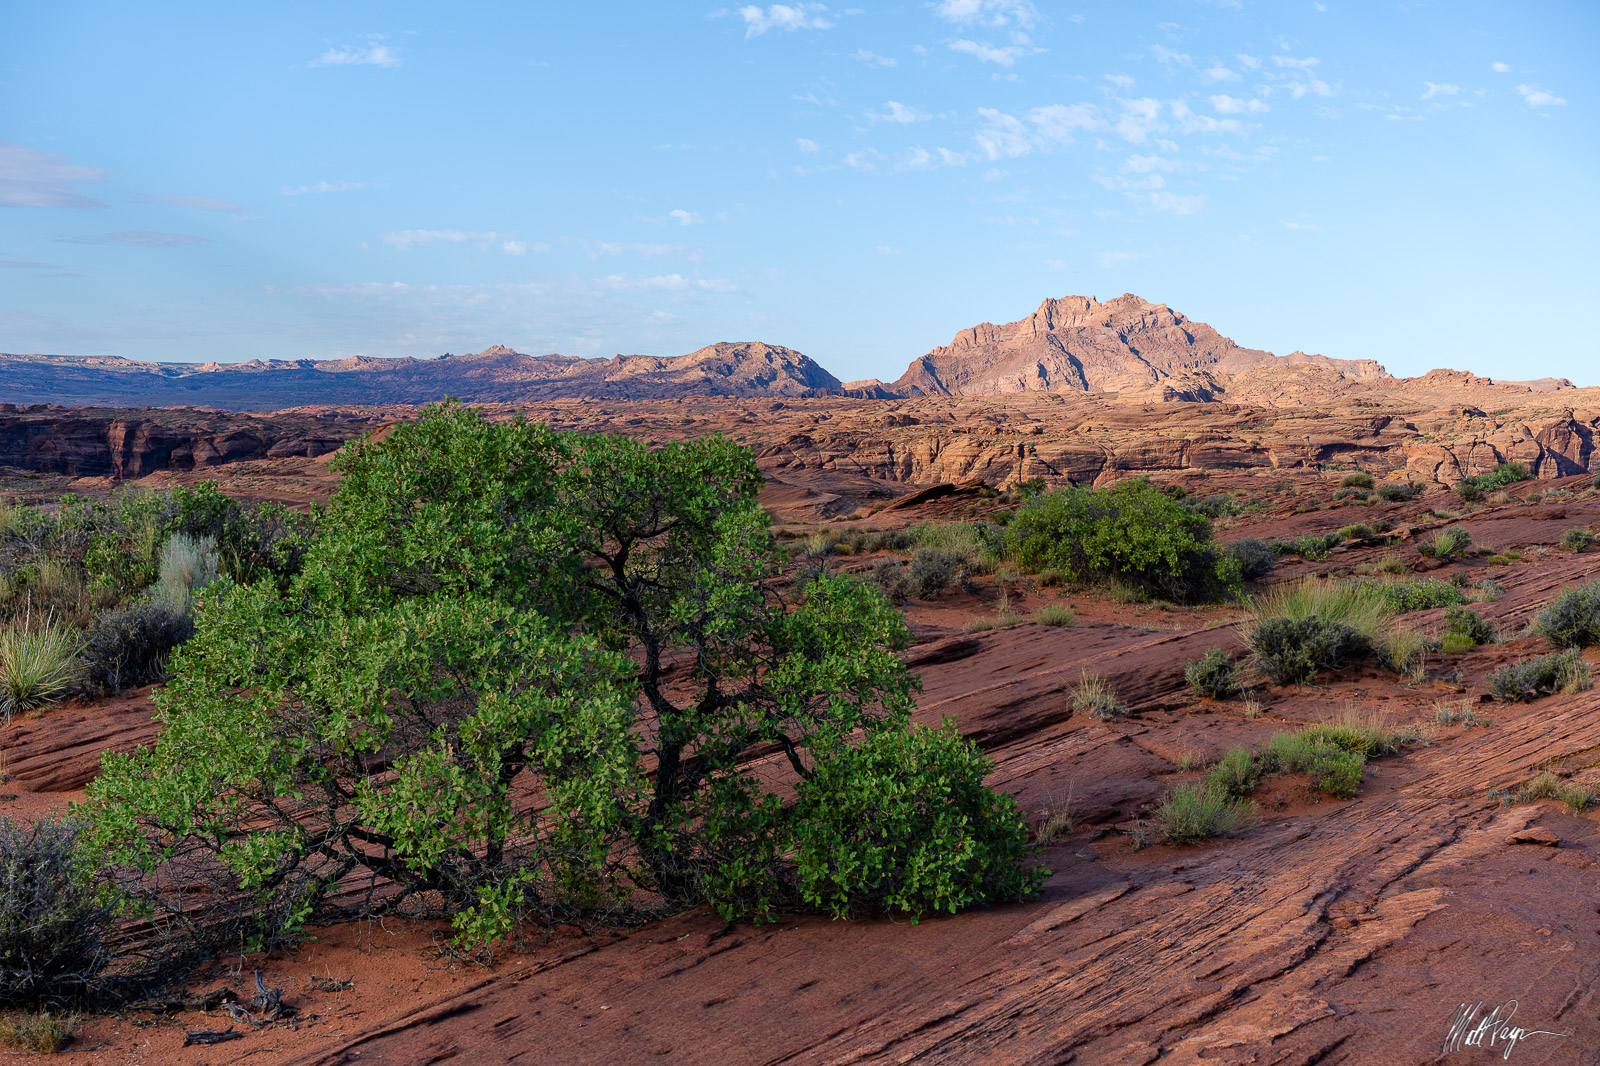 Scrub oak and other hearty foliage grow in the middle of the desert of Arizona, showing that the desert can provide life and...